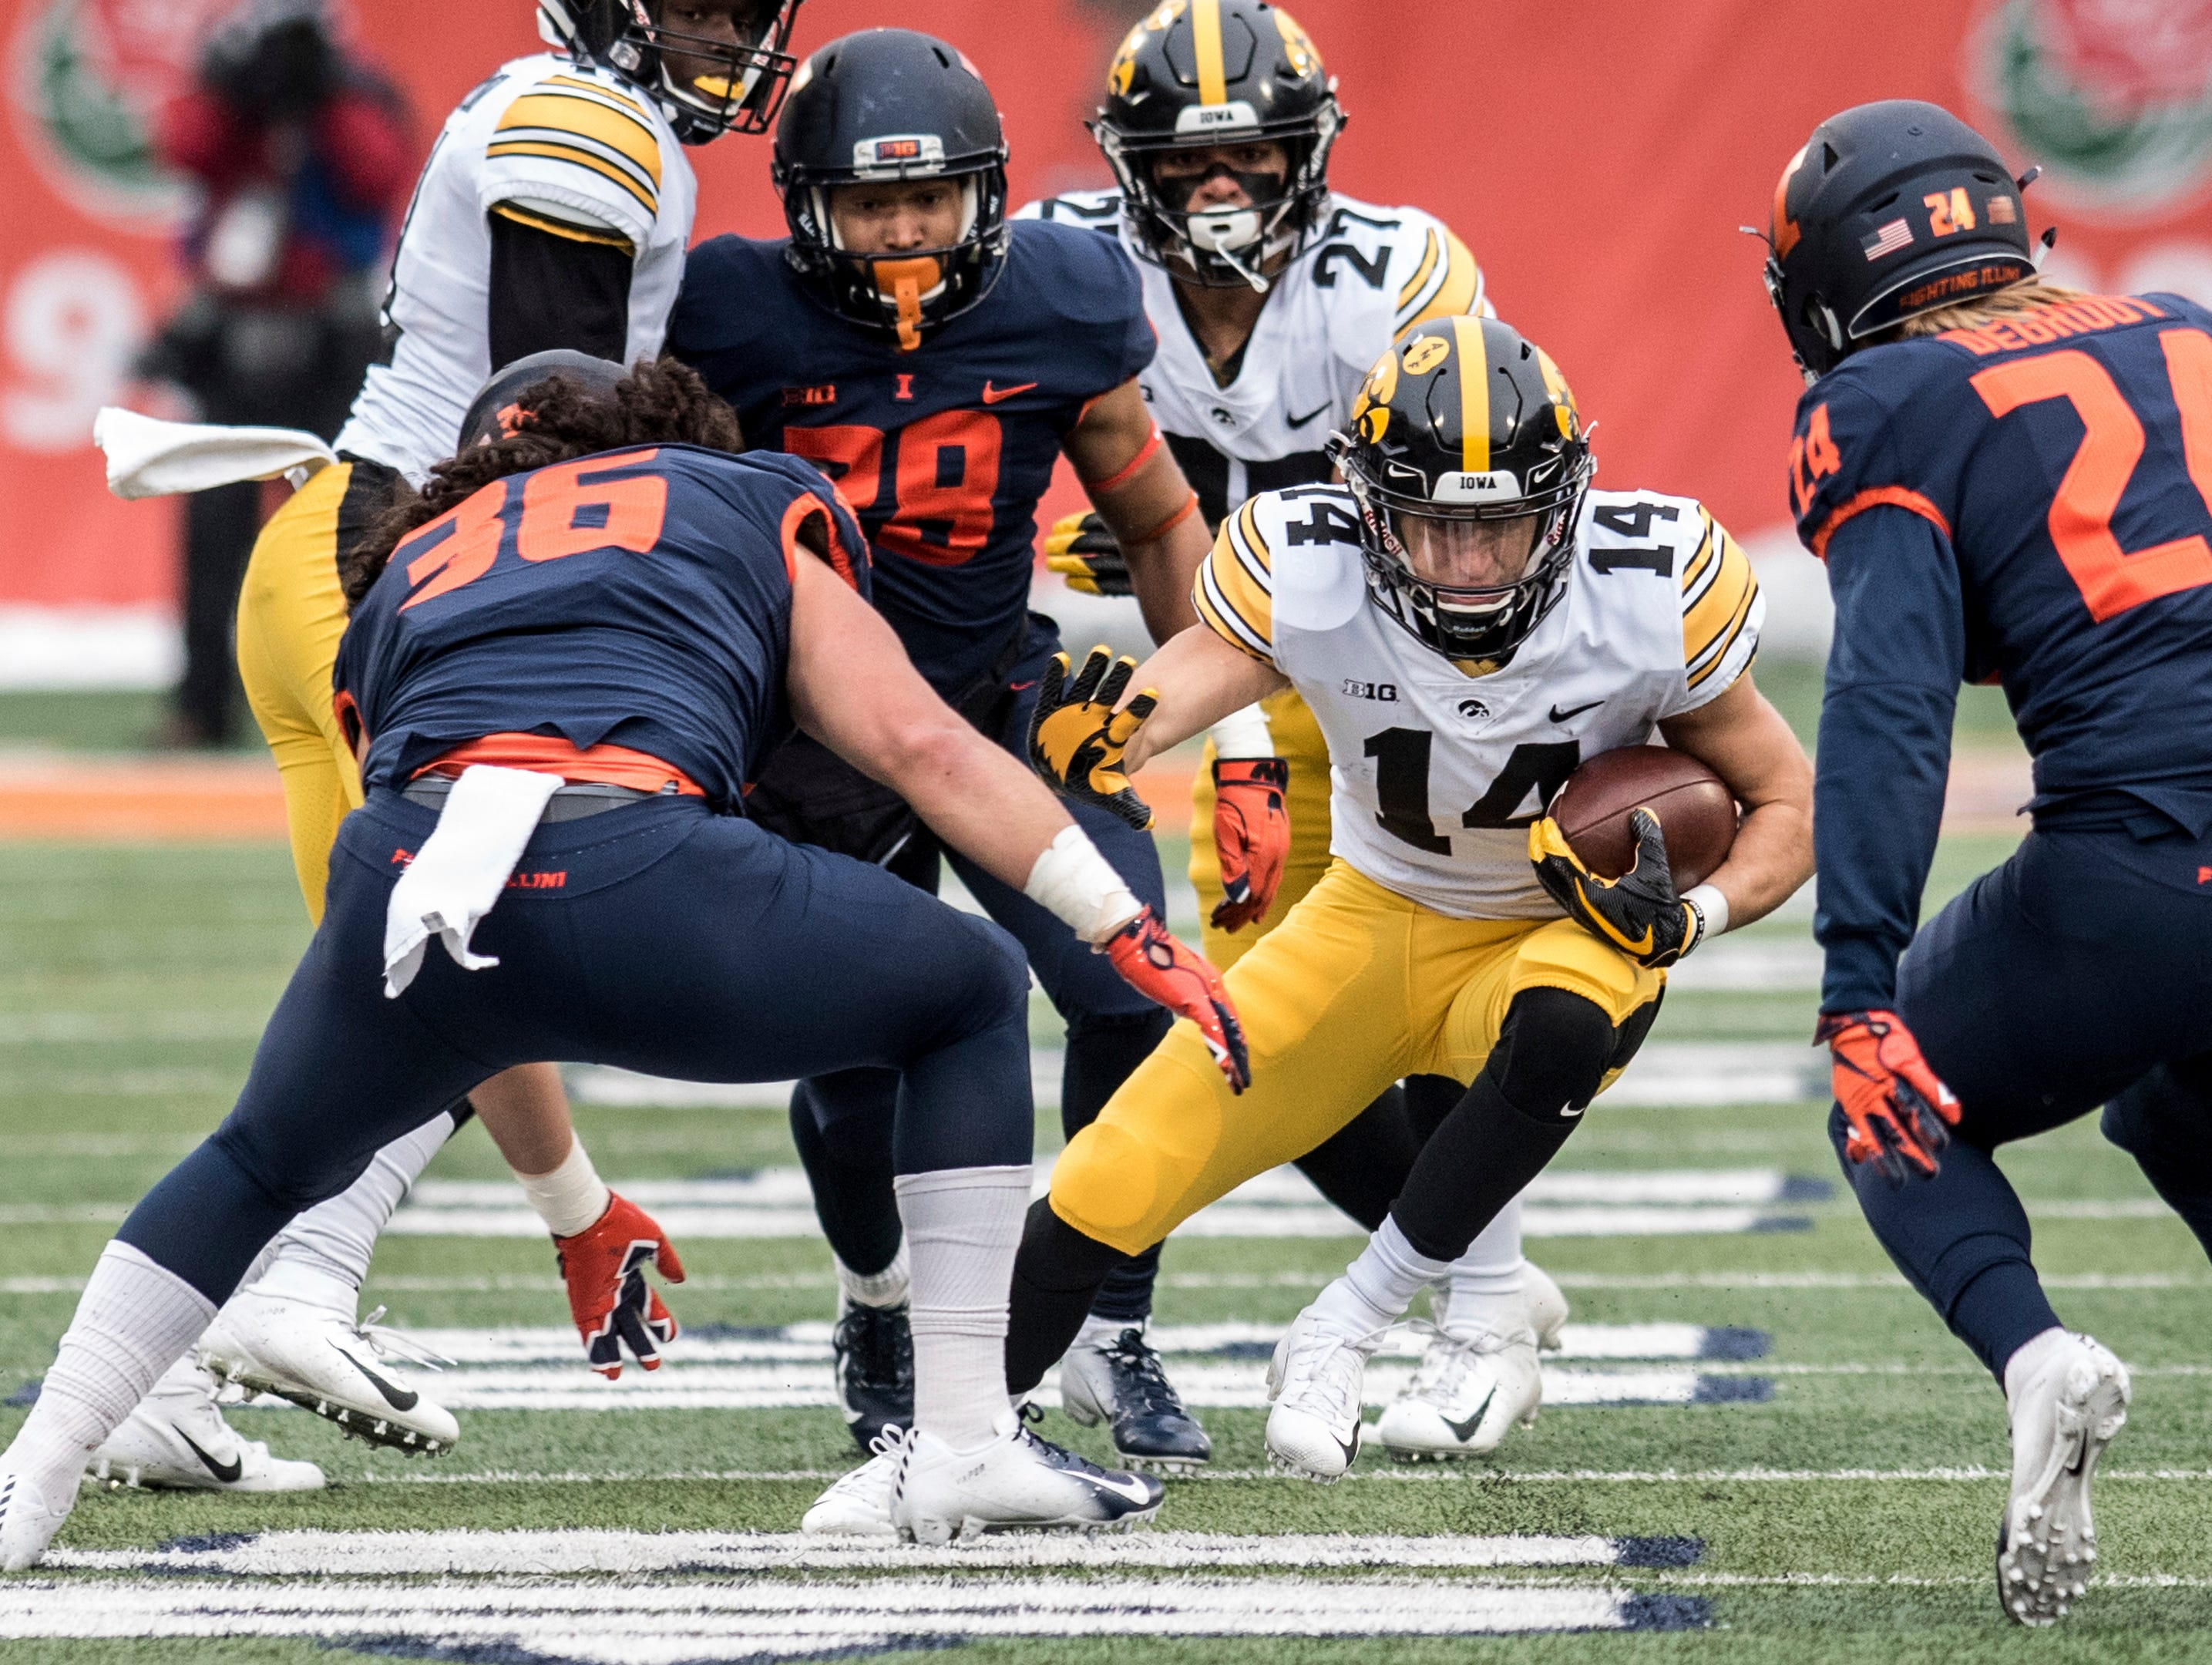 Iowa's Kyle Groeneweg (14) returns the ball against Illinois in the first half of a NCAA college football game, Saturday, Nov. 17, 2018, in Champaign, Ill.